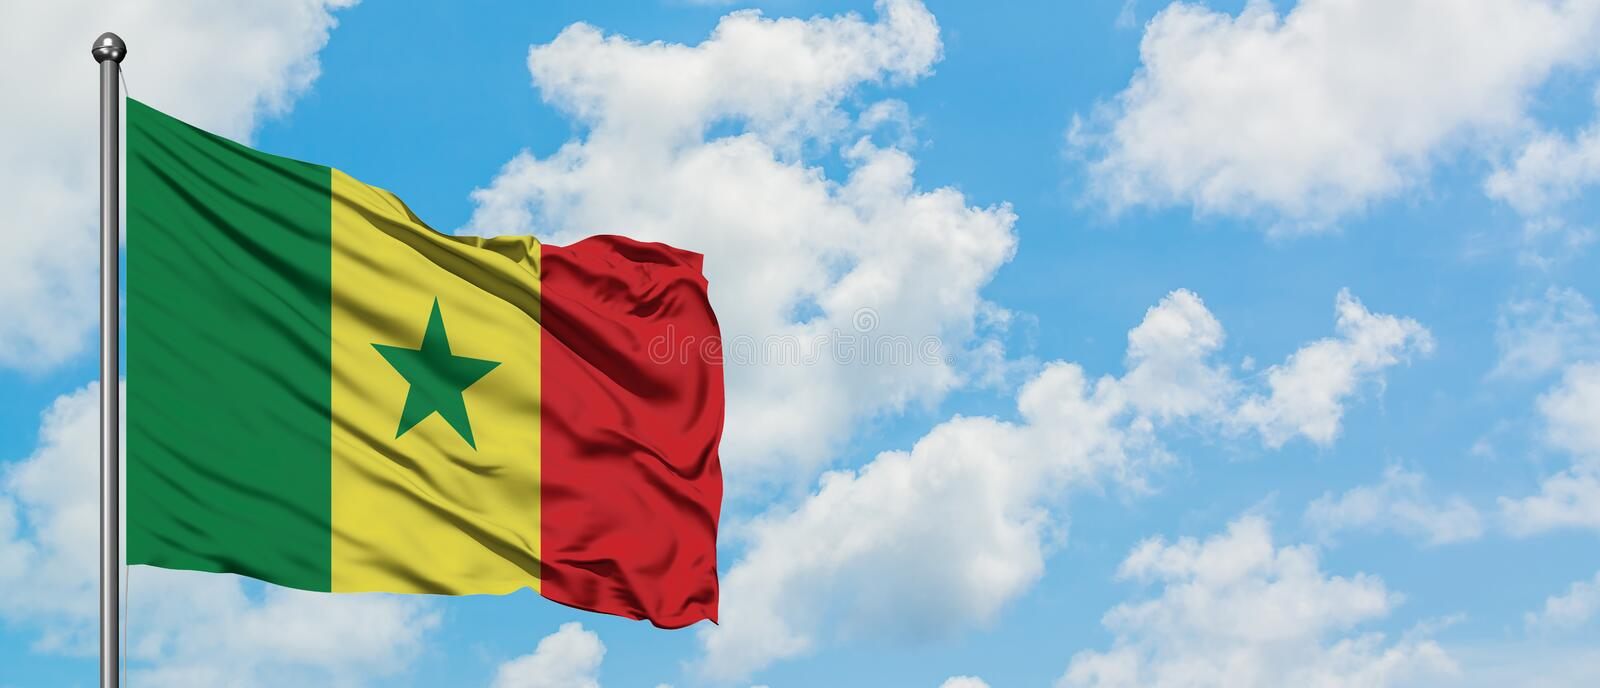 Senegal flag waving in the wind against white cloudy blue sky. Diplomacy concept, international relations.  stock image